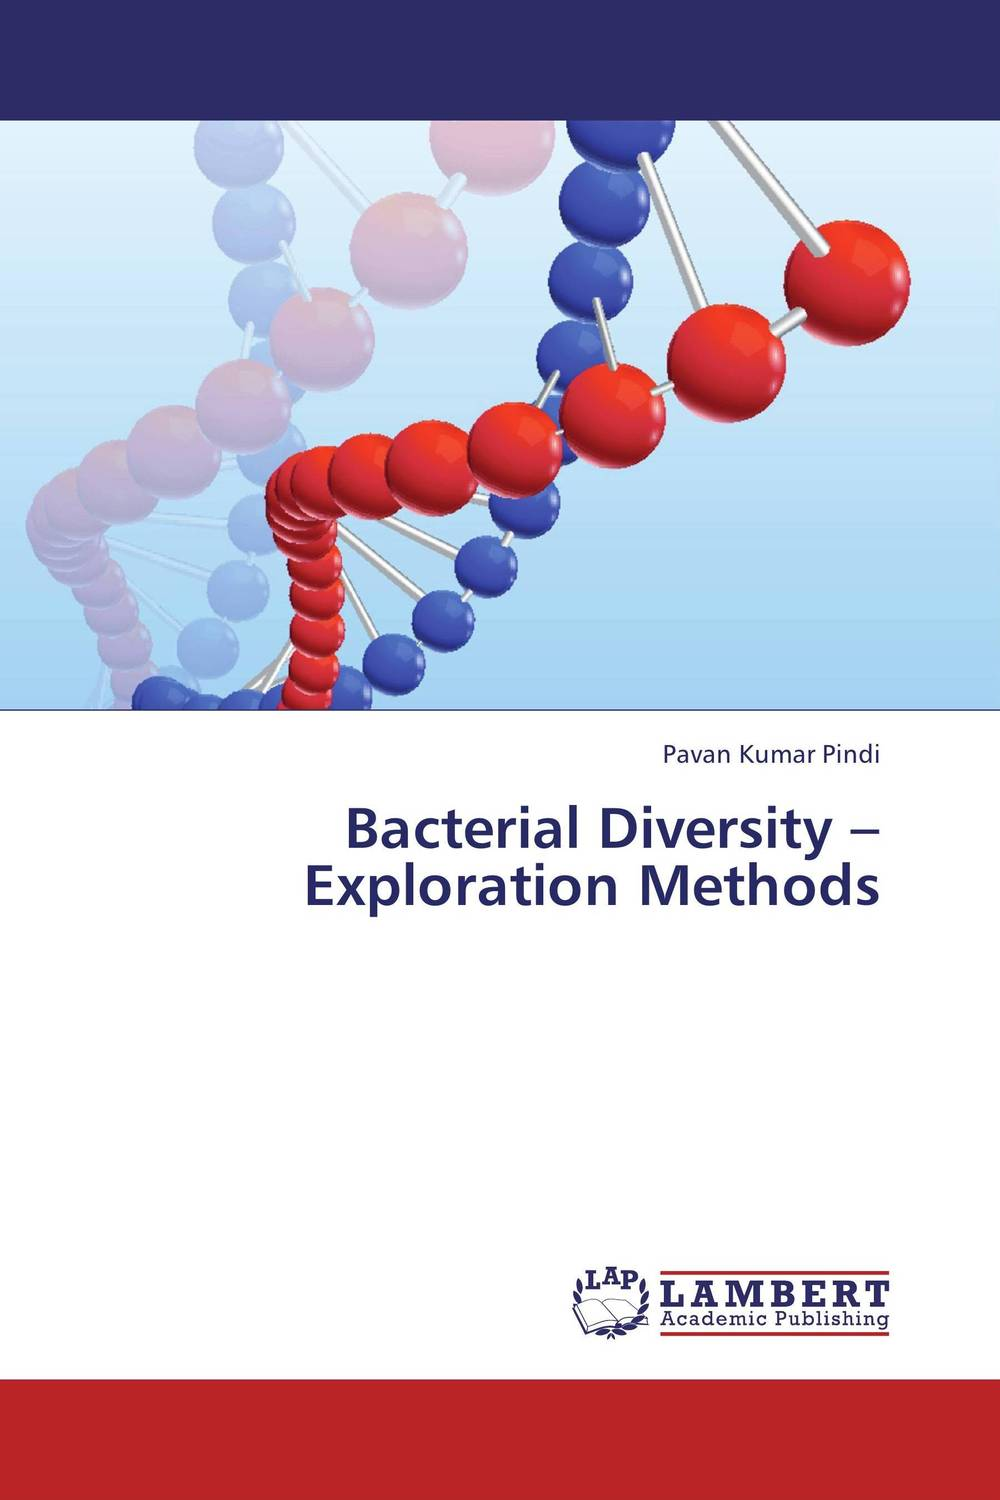 Bacterial Diversity – Exploration Methods